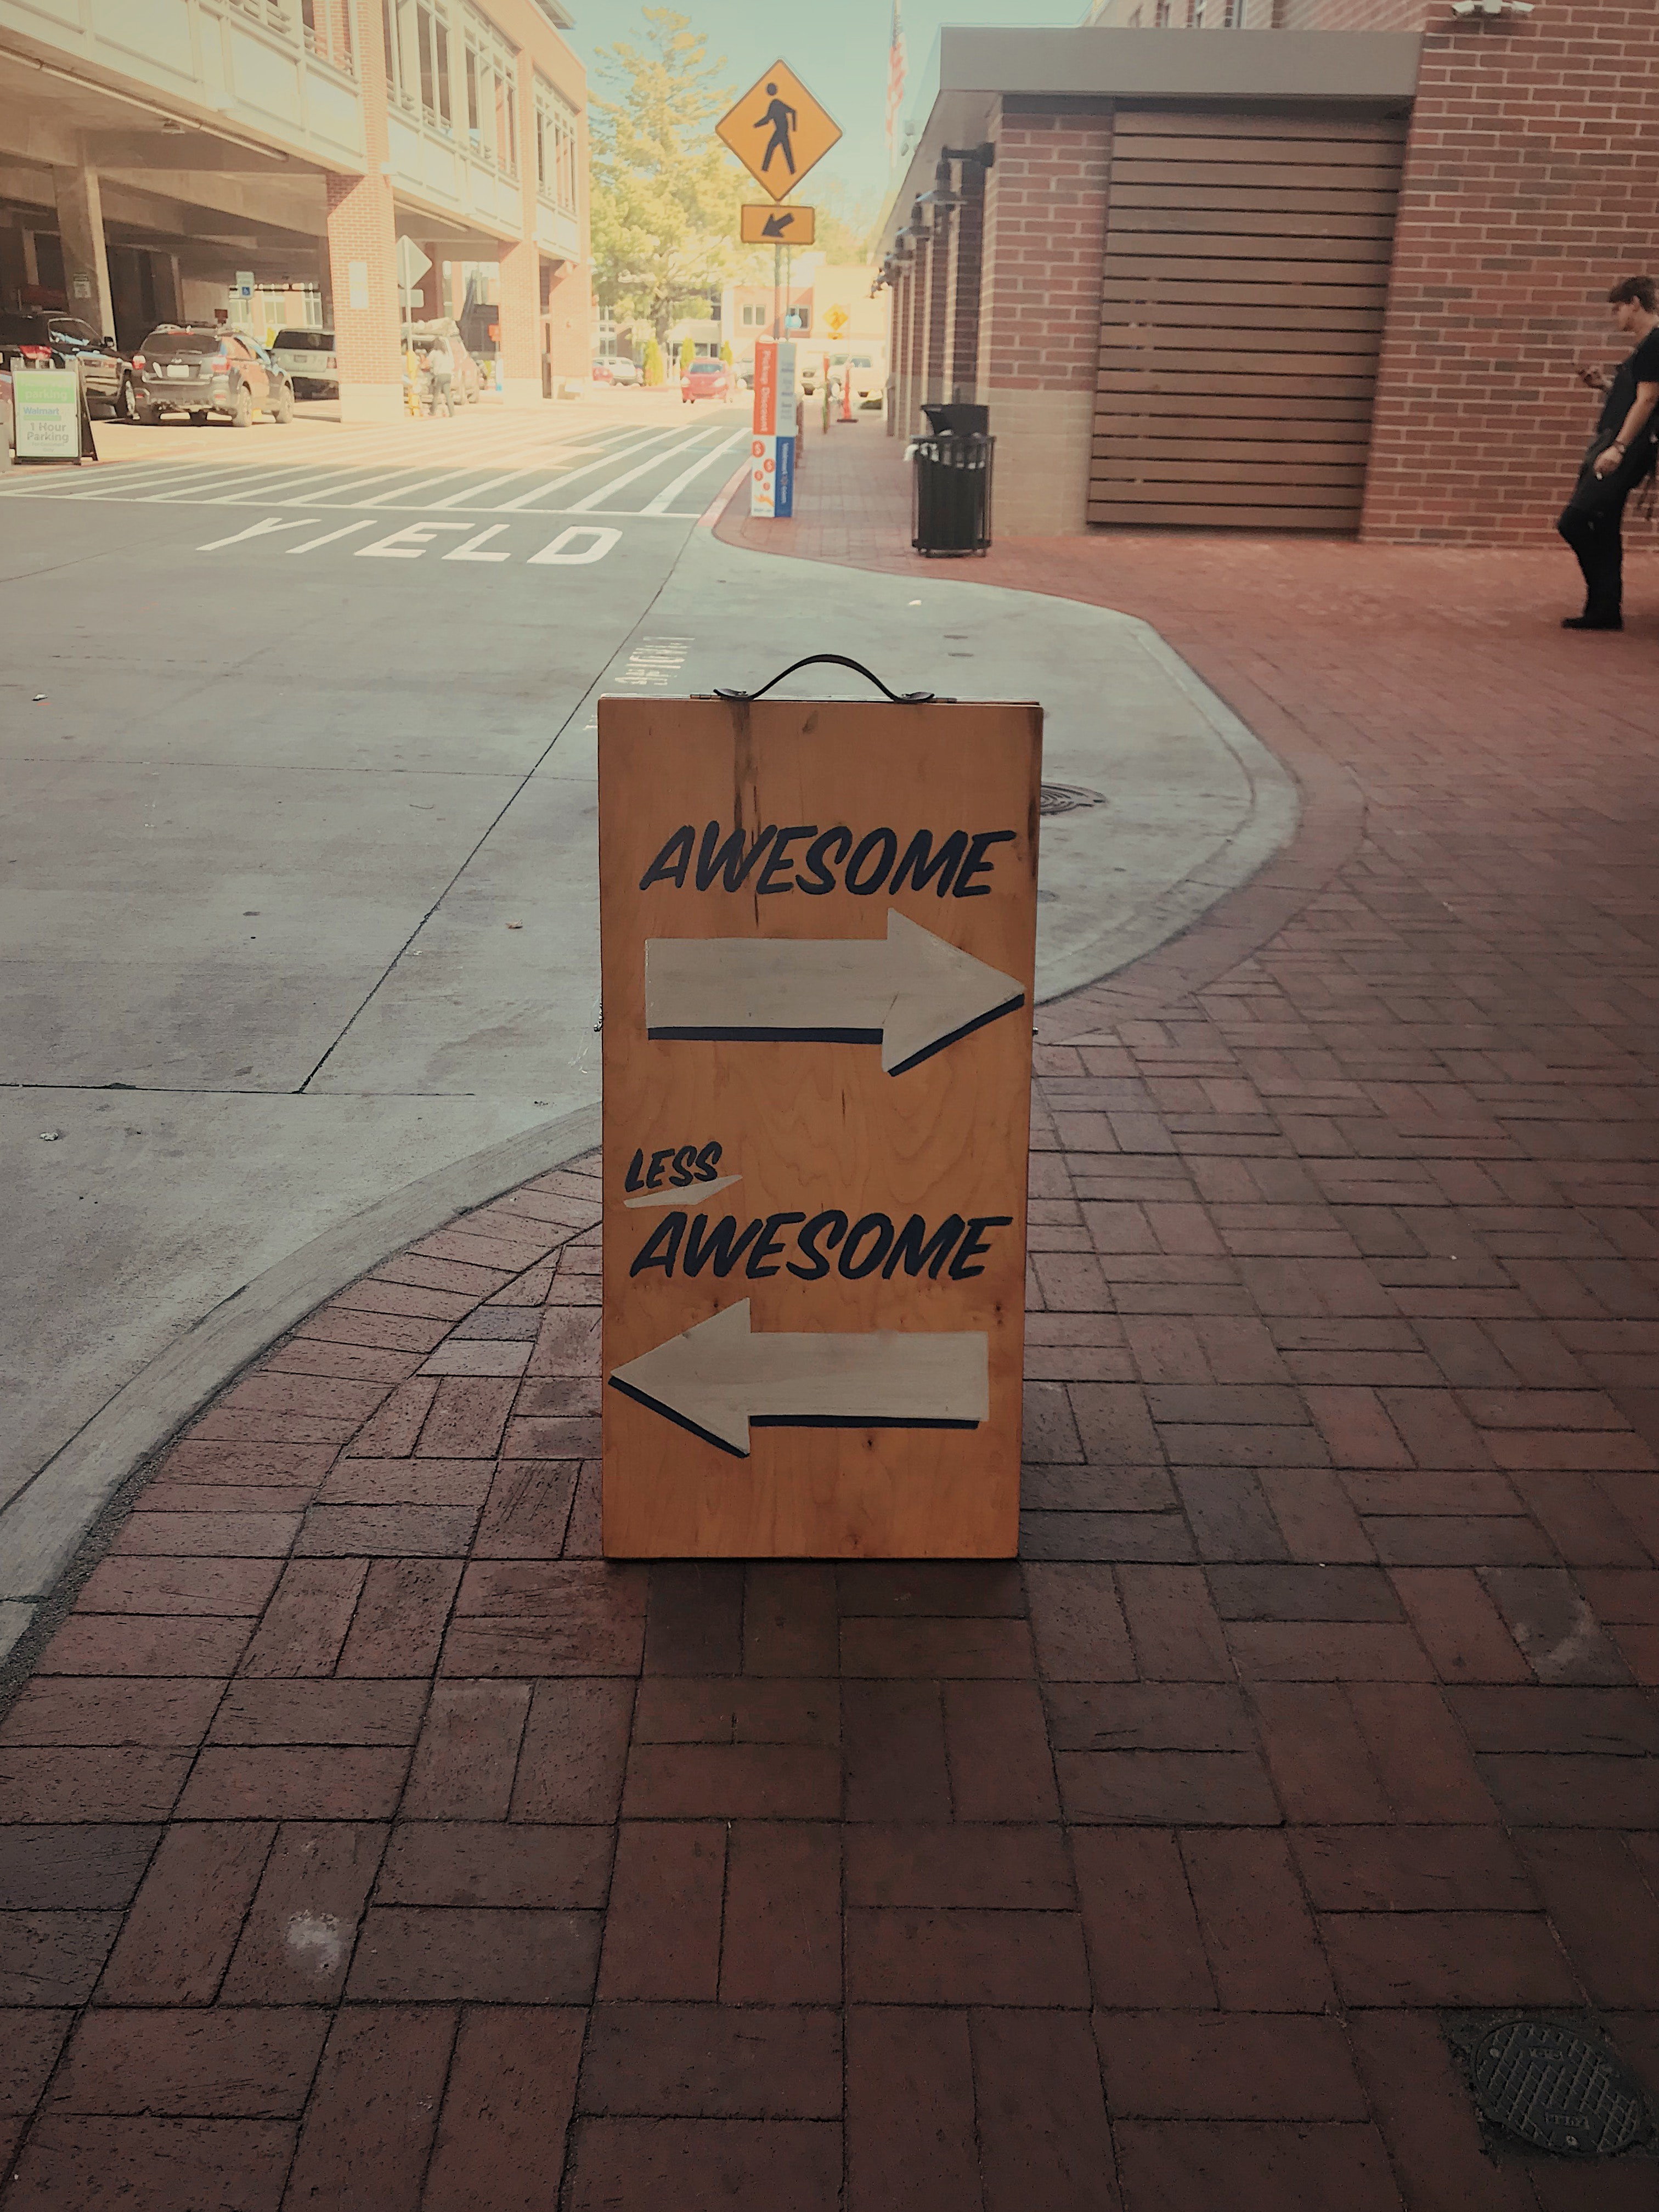 A sign with awesome pointing to the right, and less awesome pointing left.